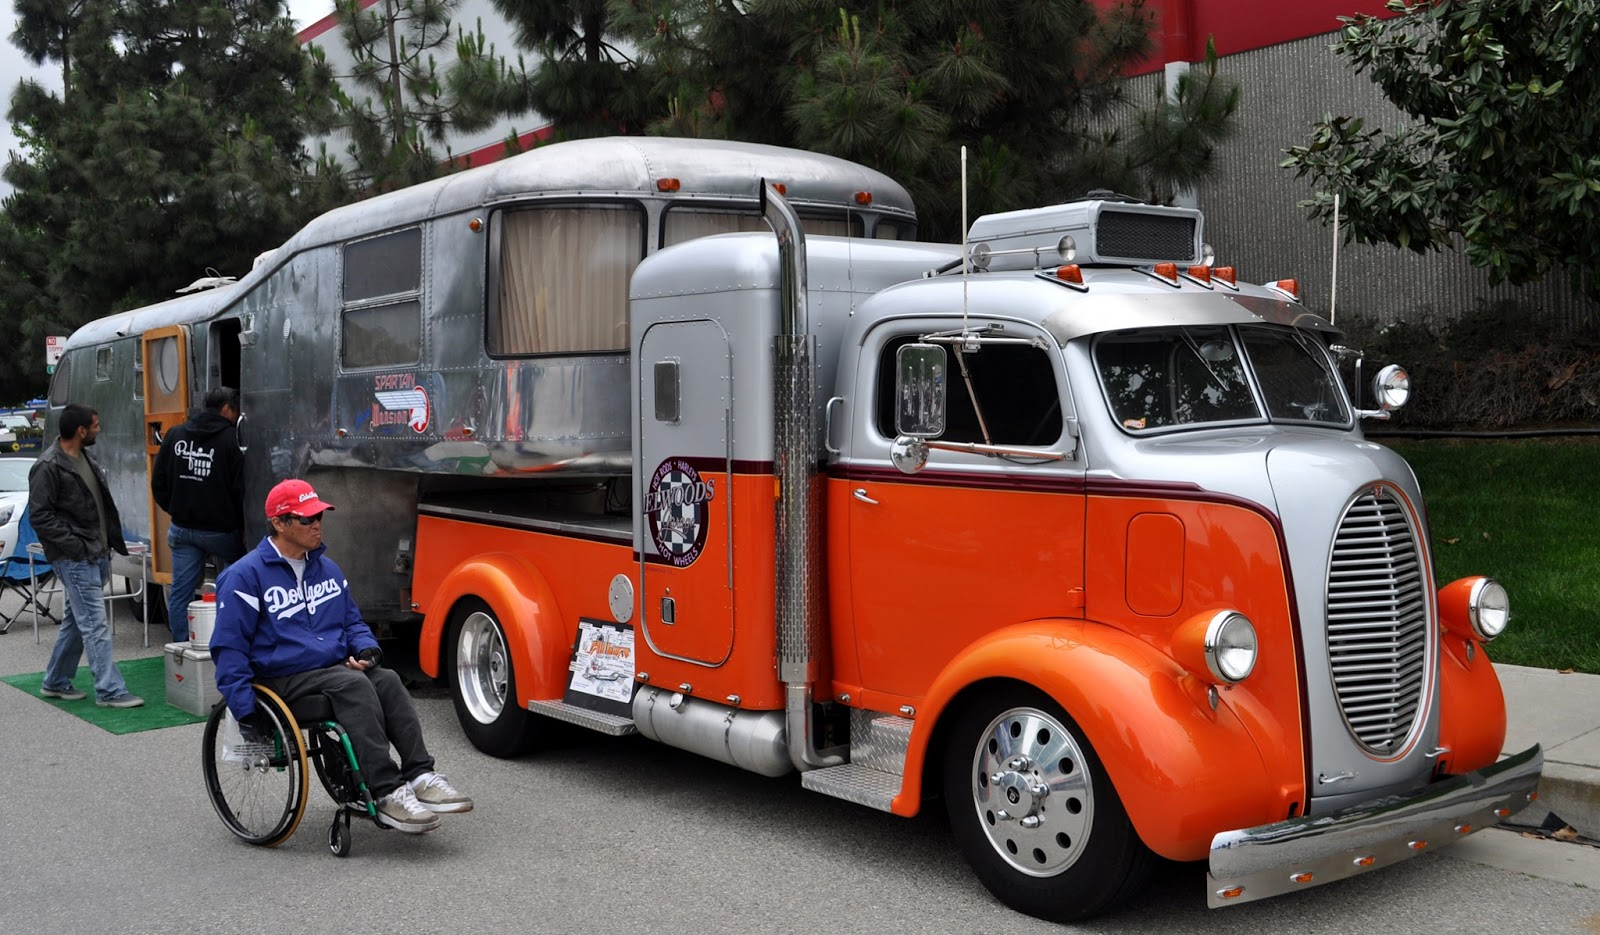 Just A Car Guy: Most impressive hot rod truck and trailer ...